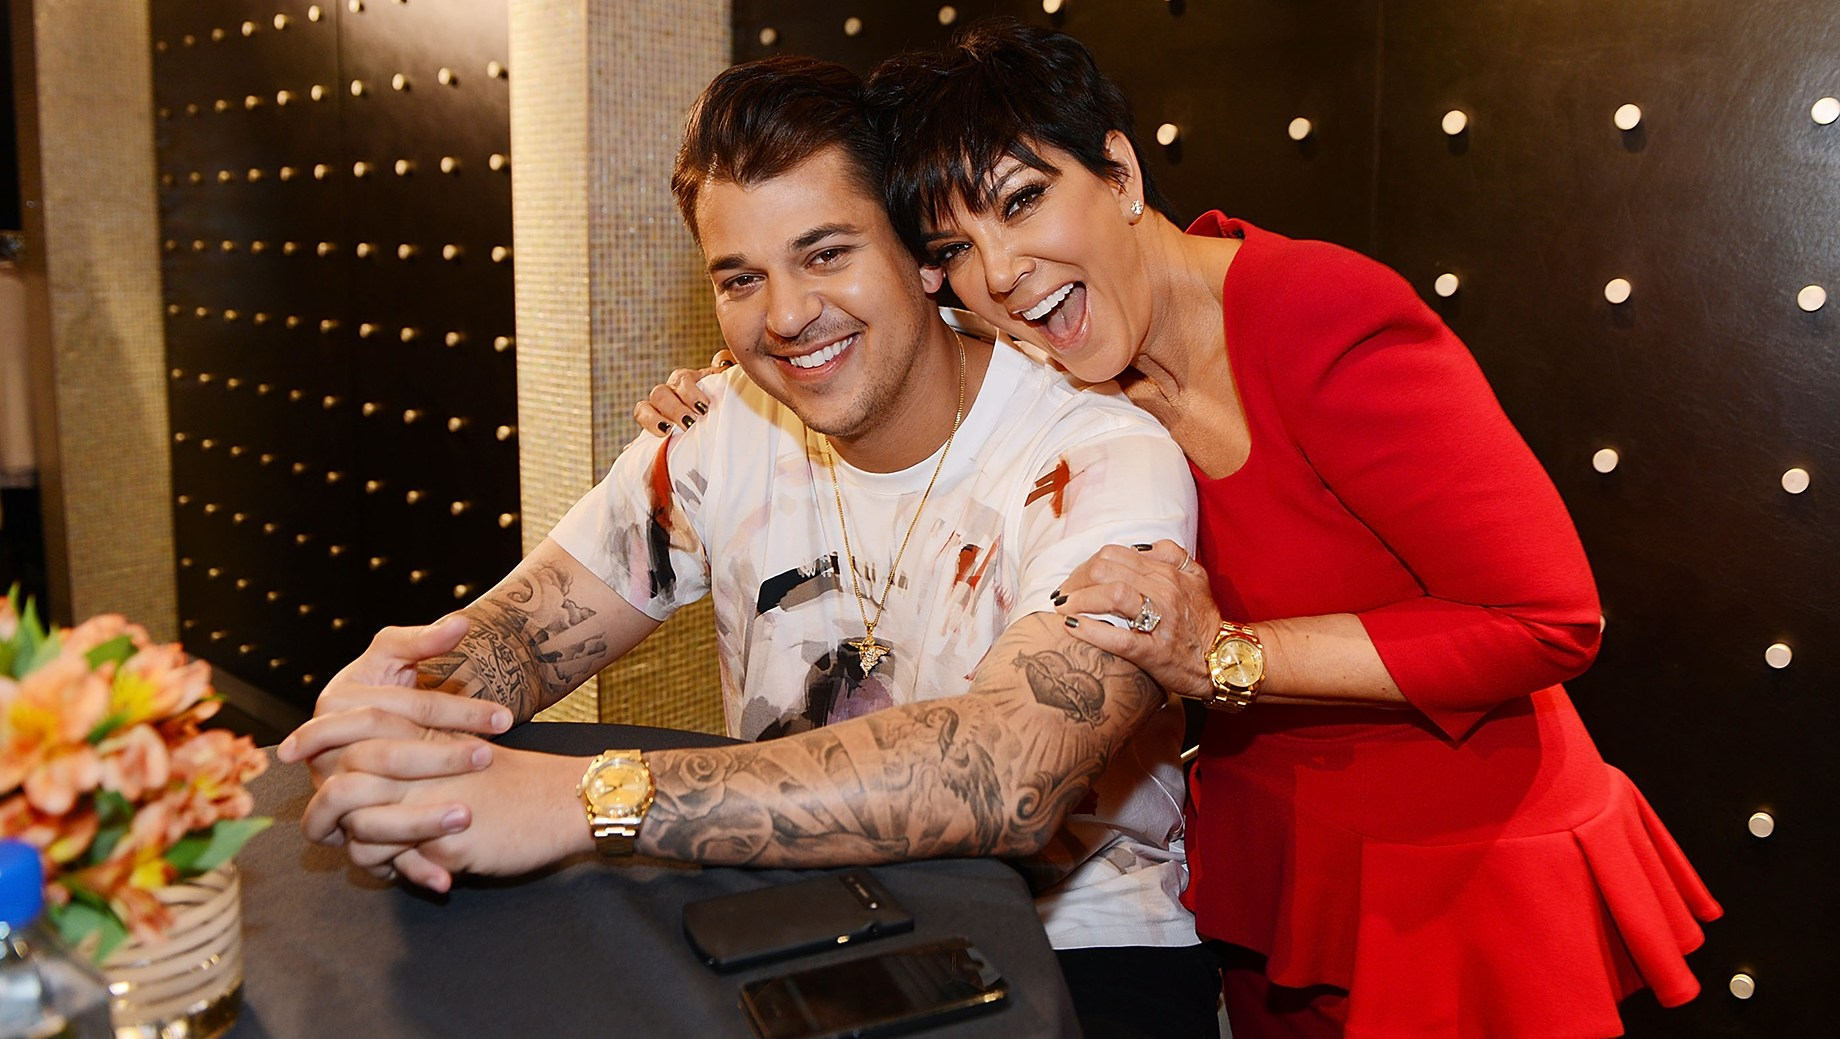 Rob Kardashian Will Return to 'Keeping Up With the Kardashians' in Season 16